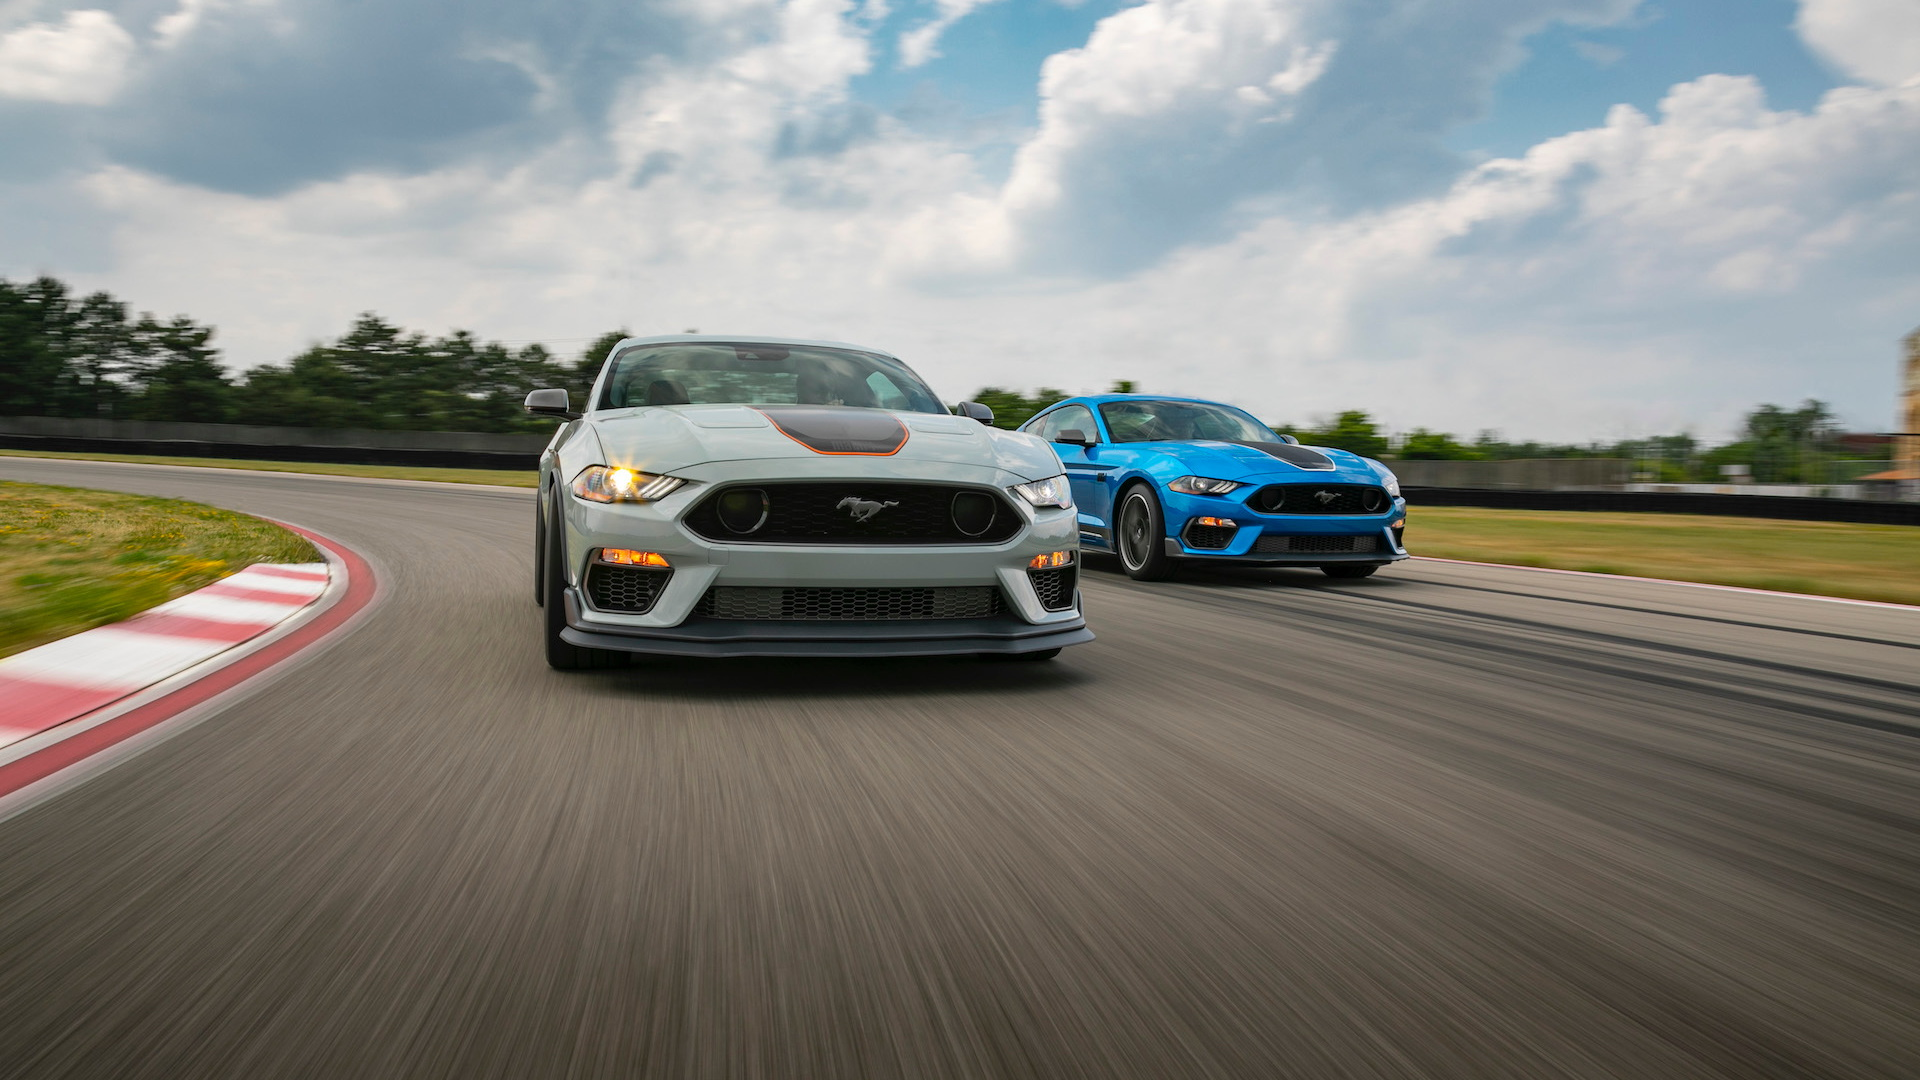 Ford Mustang Mach 1 Also Replaces Mustang GT Performance Package 2 class=